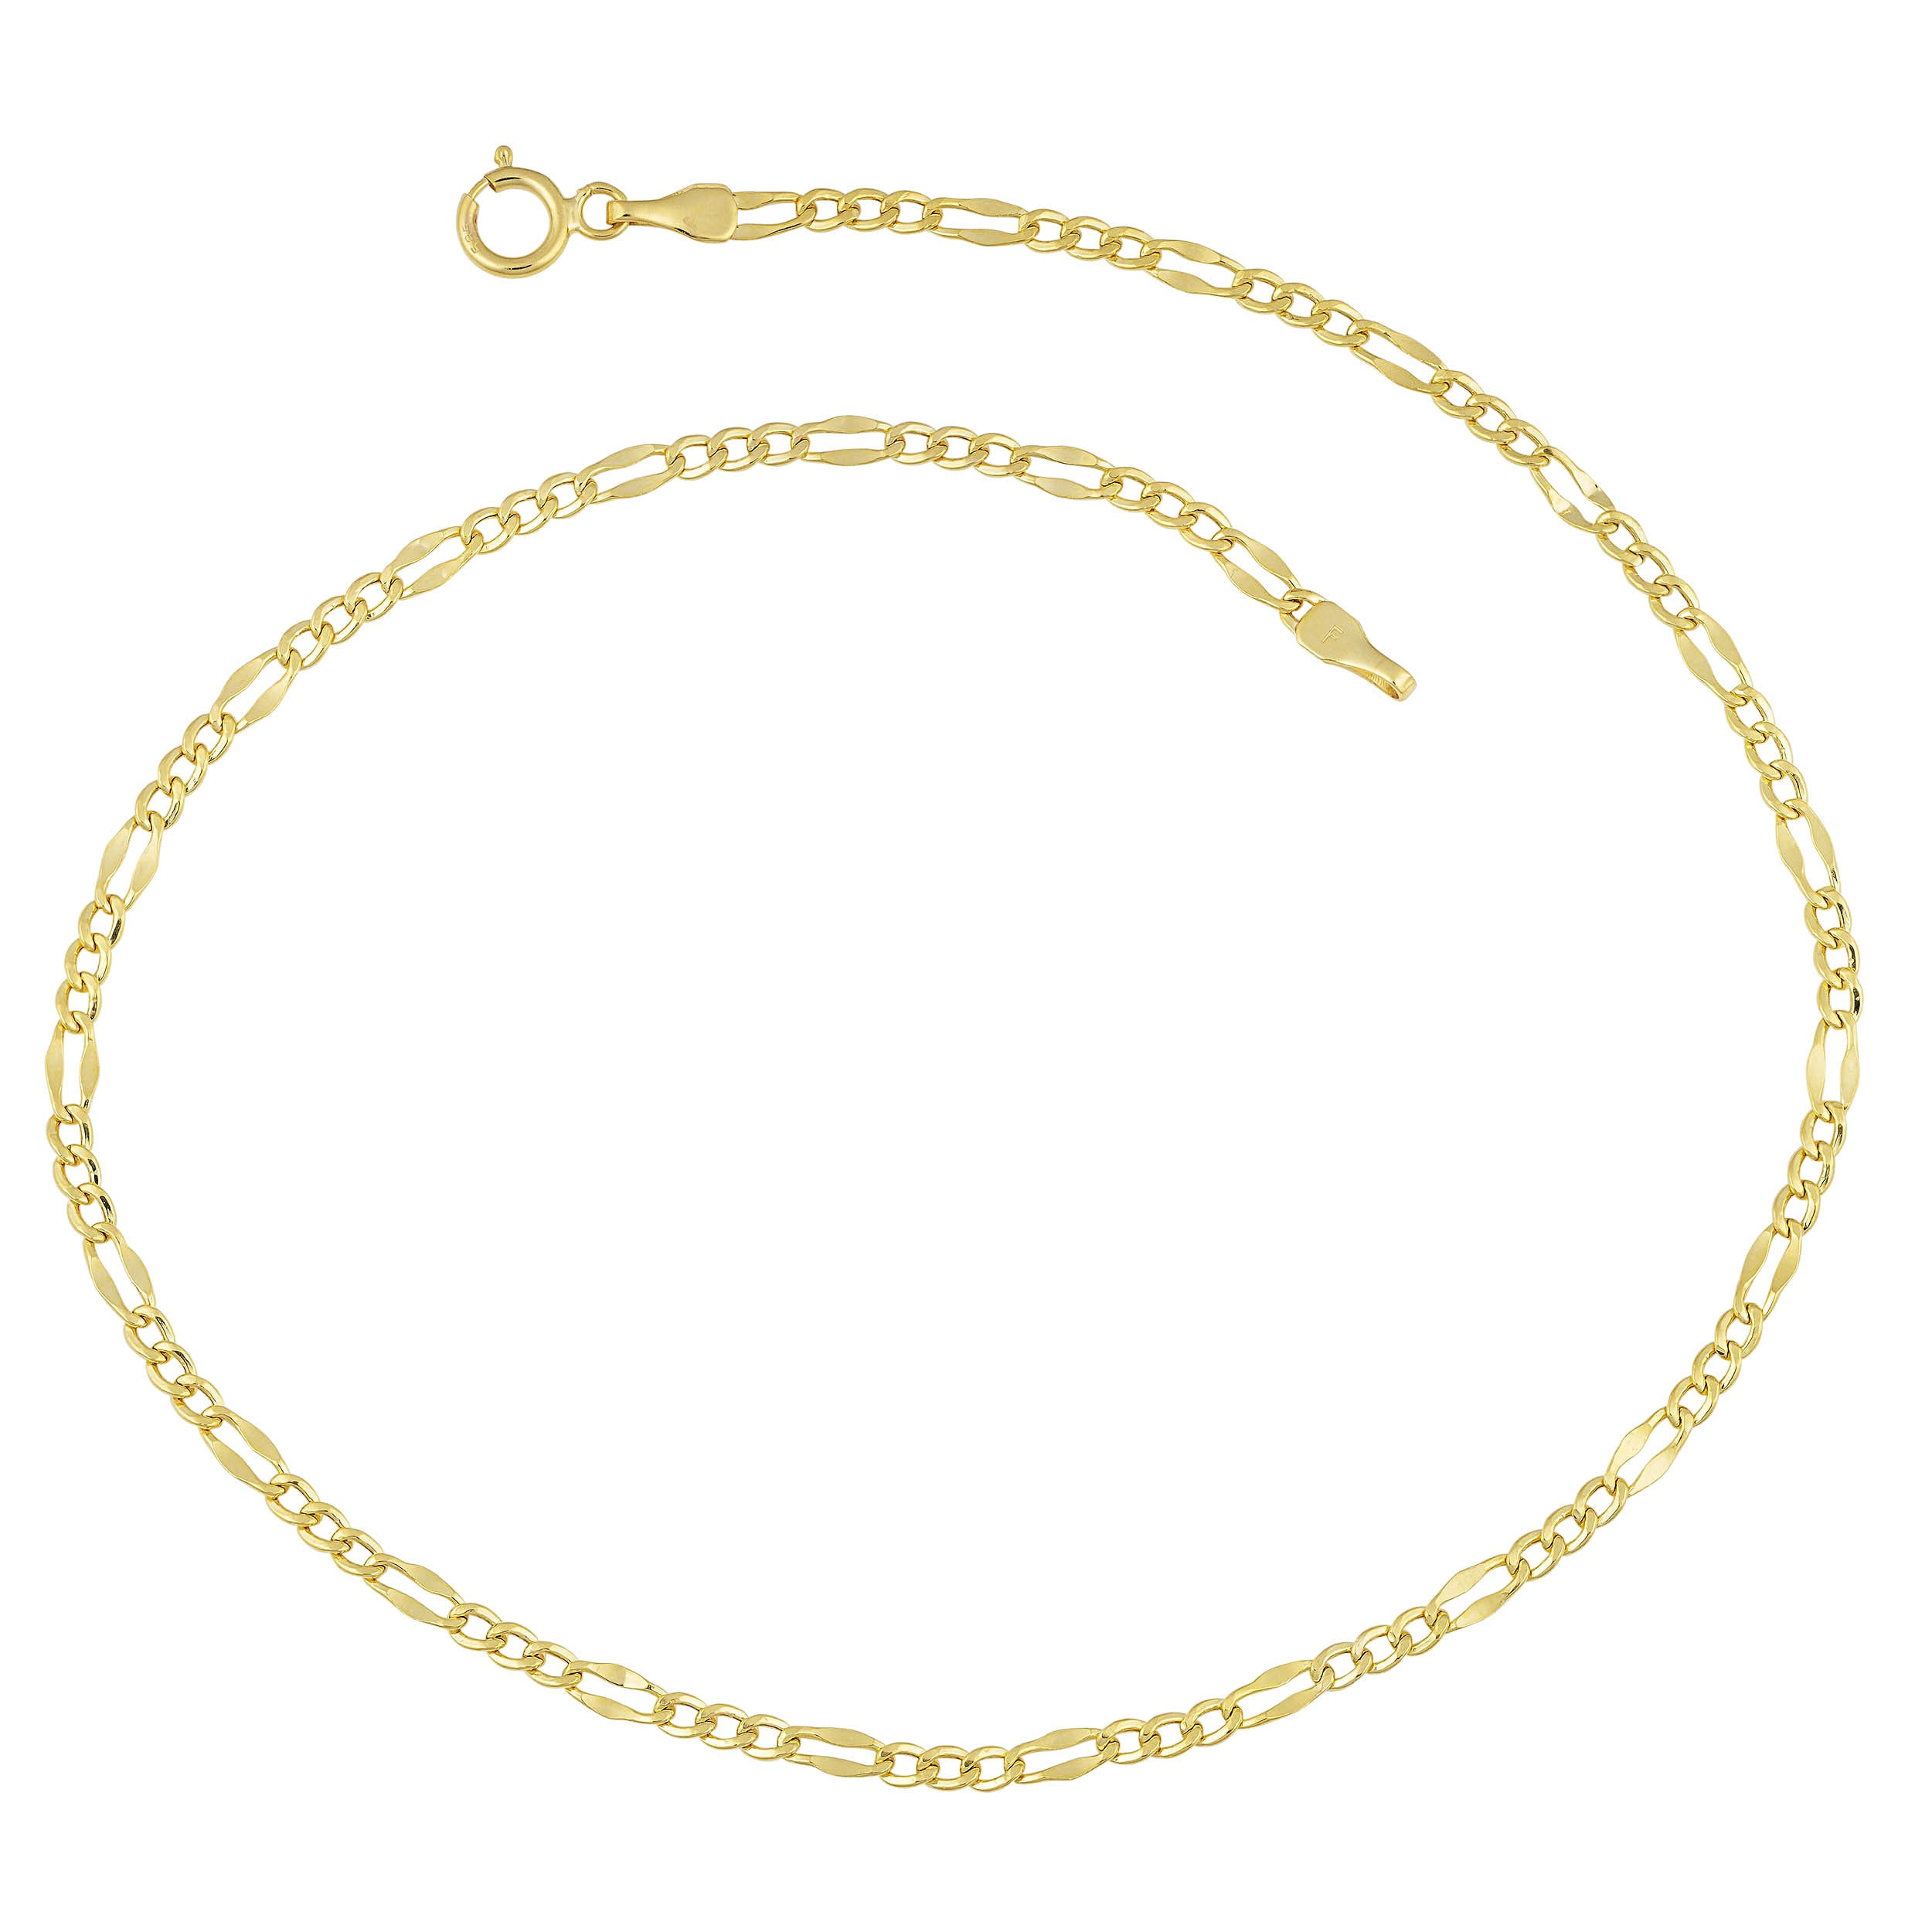 braided gold chain karat brfox bracelet anklet category elle by anklets jewels fox archives product ankle